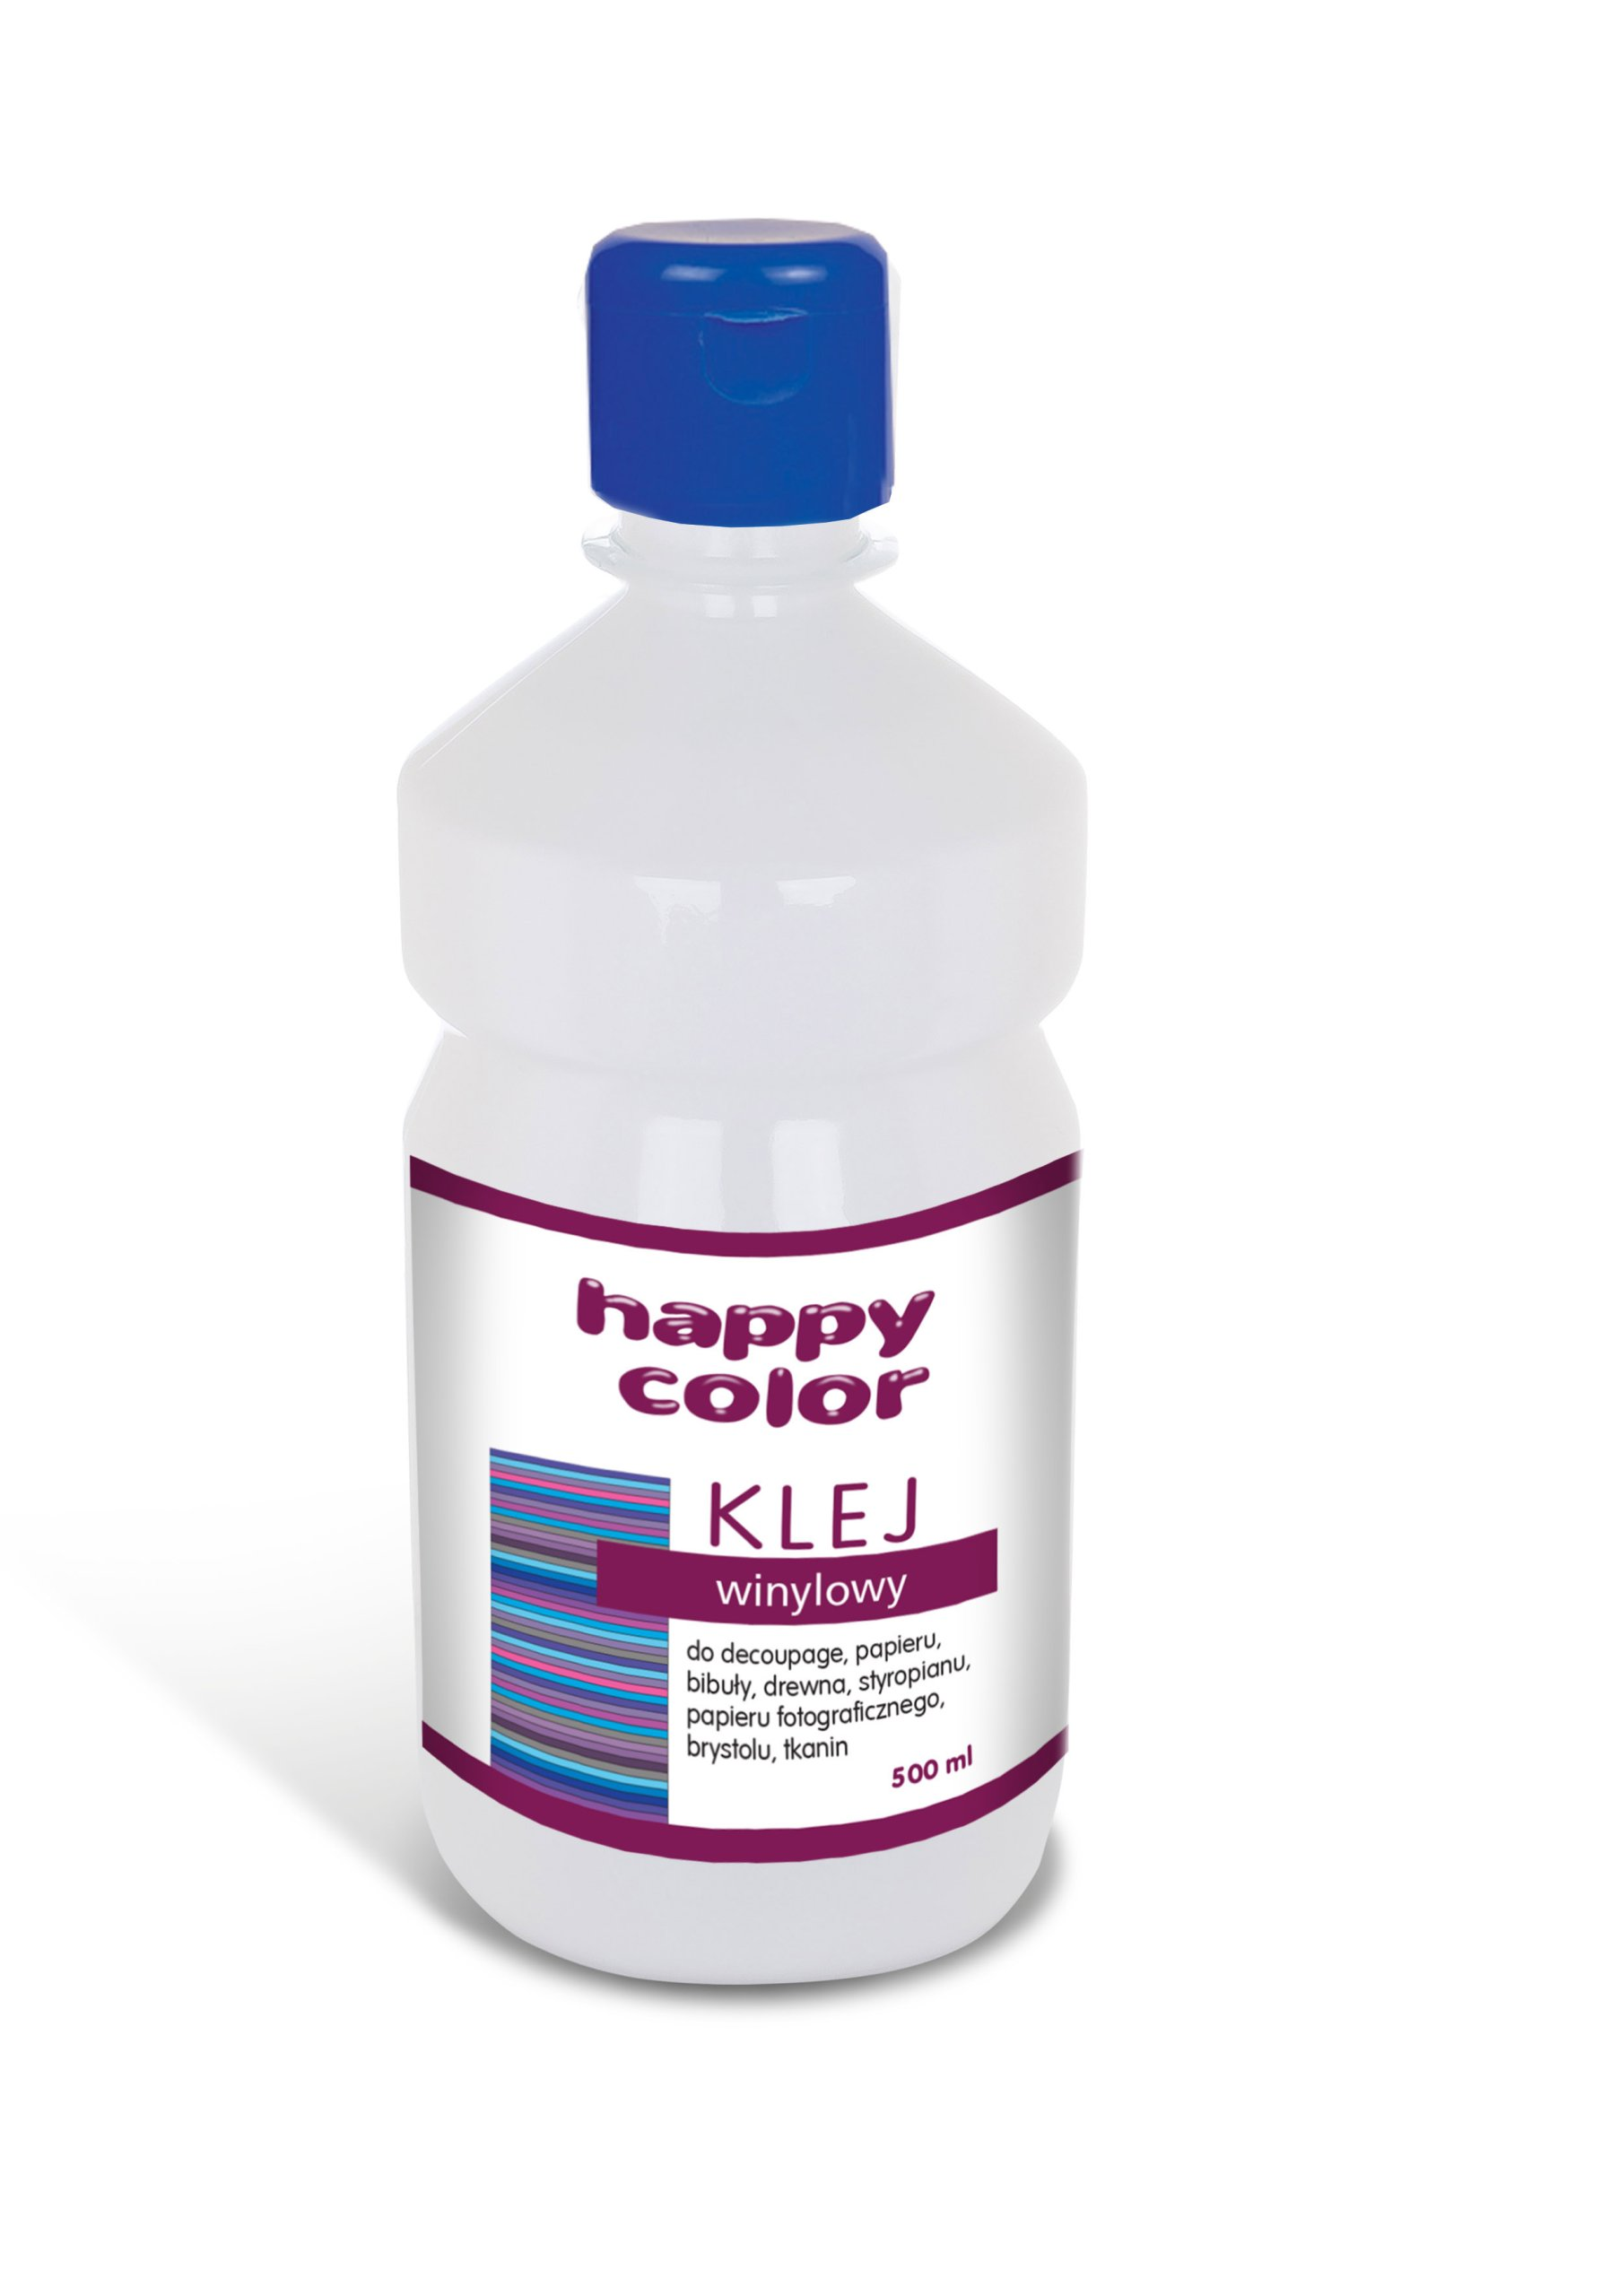 Happy Color Klej Winylowy 500ml.